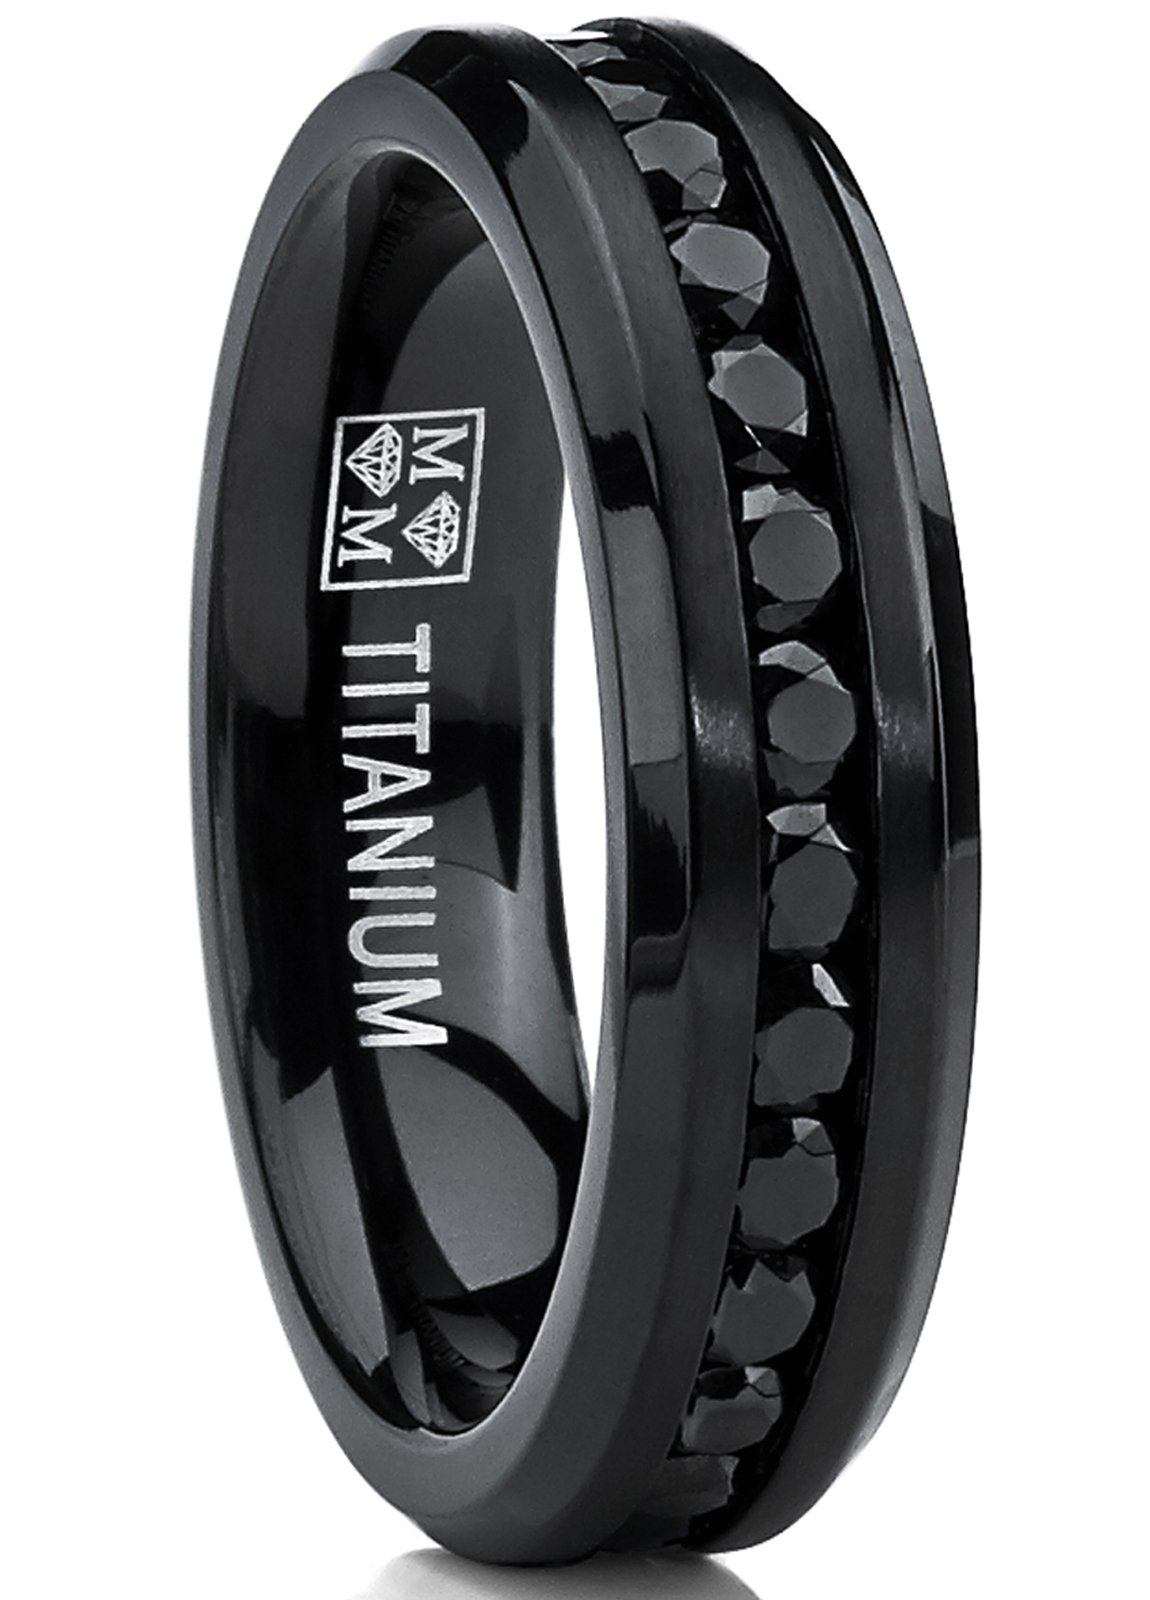 Metal Masters Co. 6MM Black Womens Eternity Titanium Ring Wedding Band W/Black Cubic Zirconia Size 7